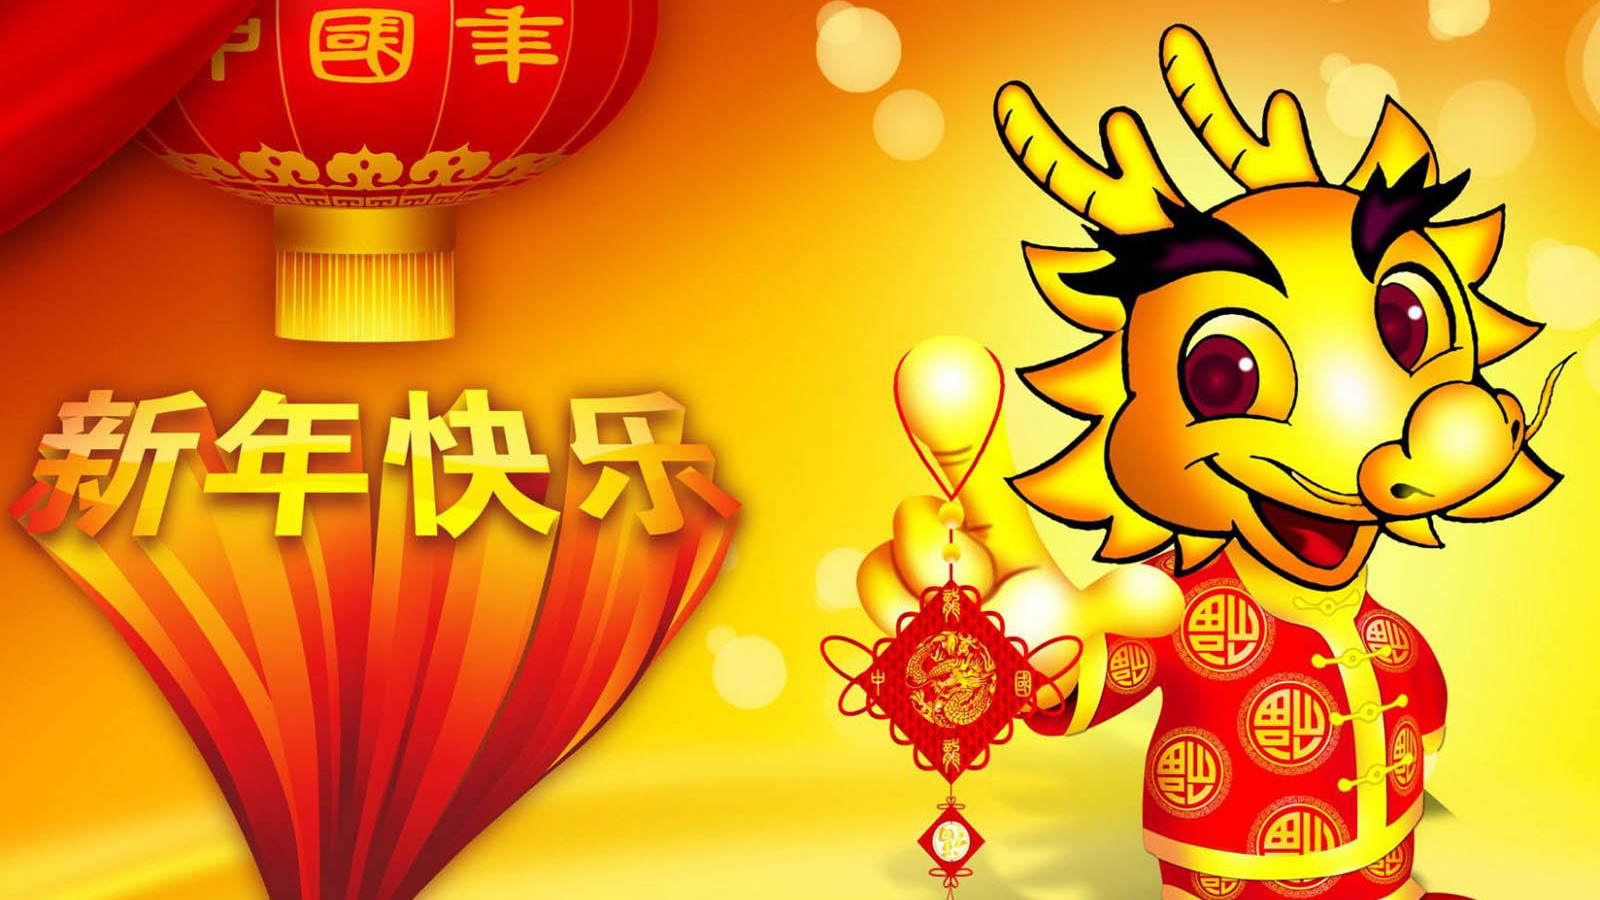 Chinese New Year 2015 Wallpaper for Desktop 1600x900